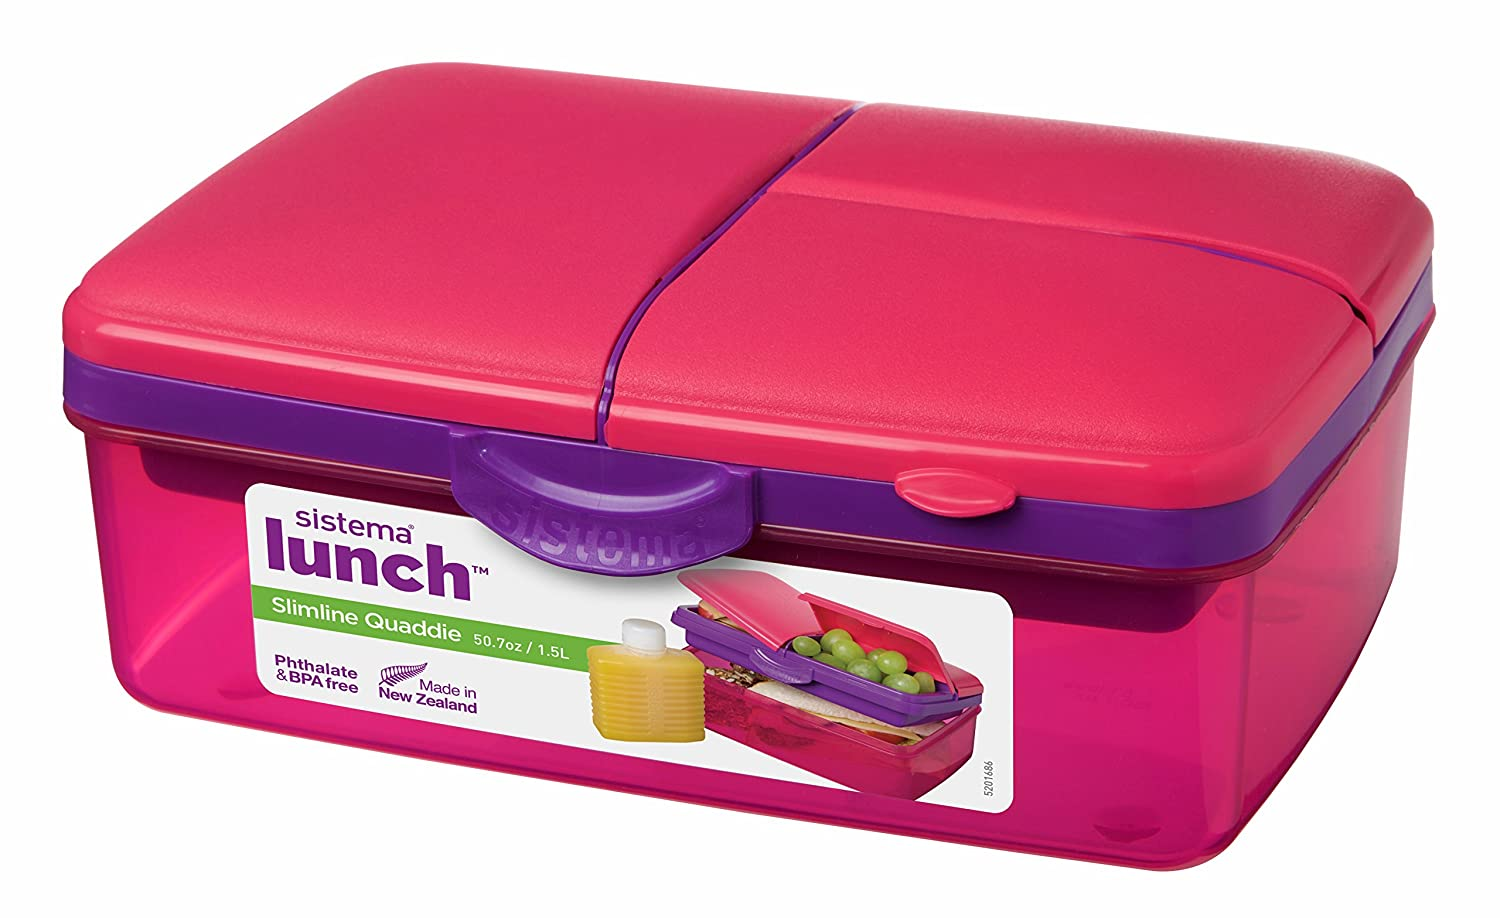 Sistema Colors Lunch Collection B00284AG8W Slimline Quaddie Lunch Box Box Food Storage Container, 50.7 Ounce/ 6.3 Cup, Assorted Colors by Sistema B00284AG8W, モンキーパンツ:f0b79cef --- ijpba.info